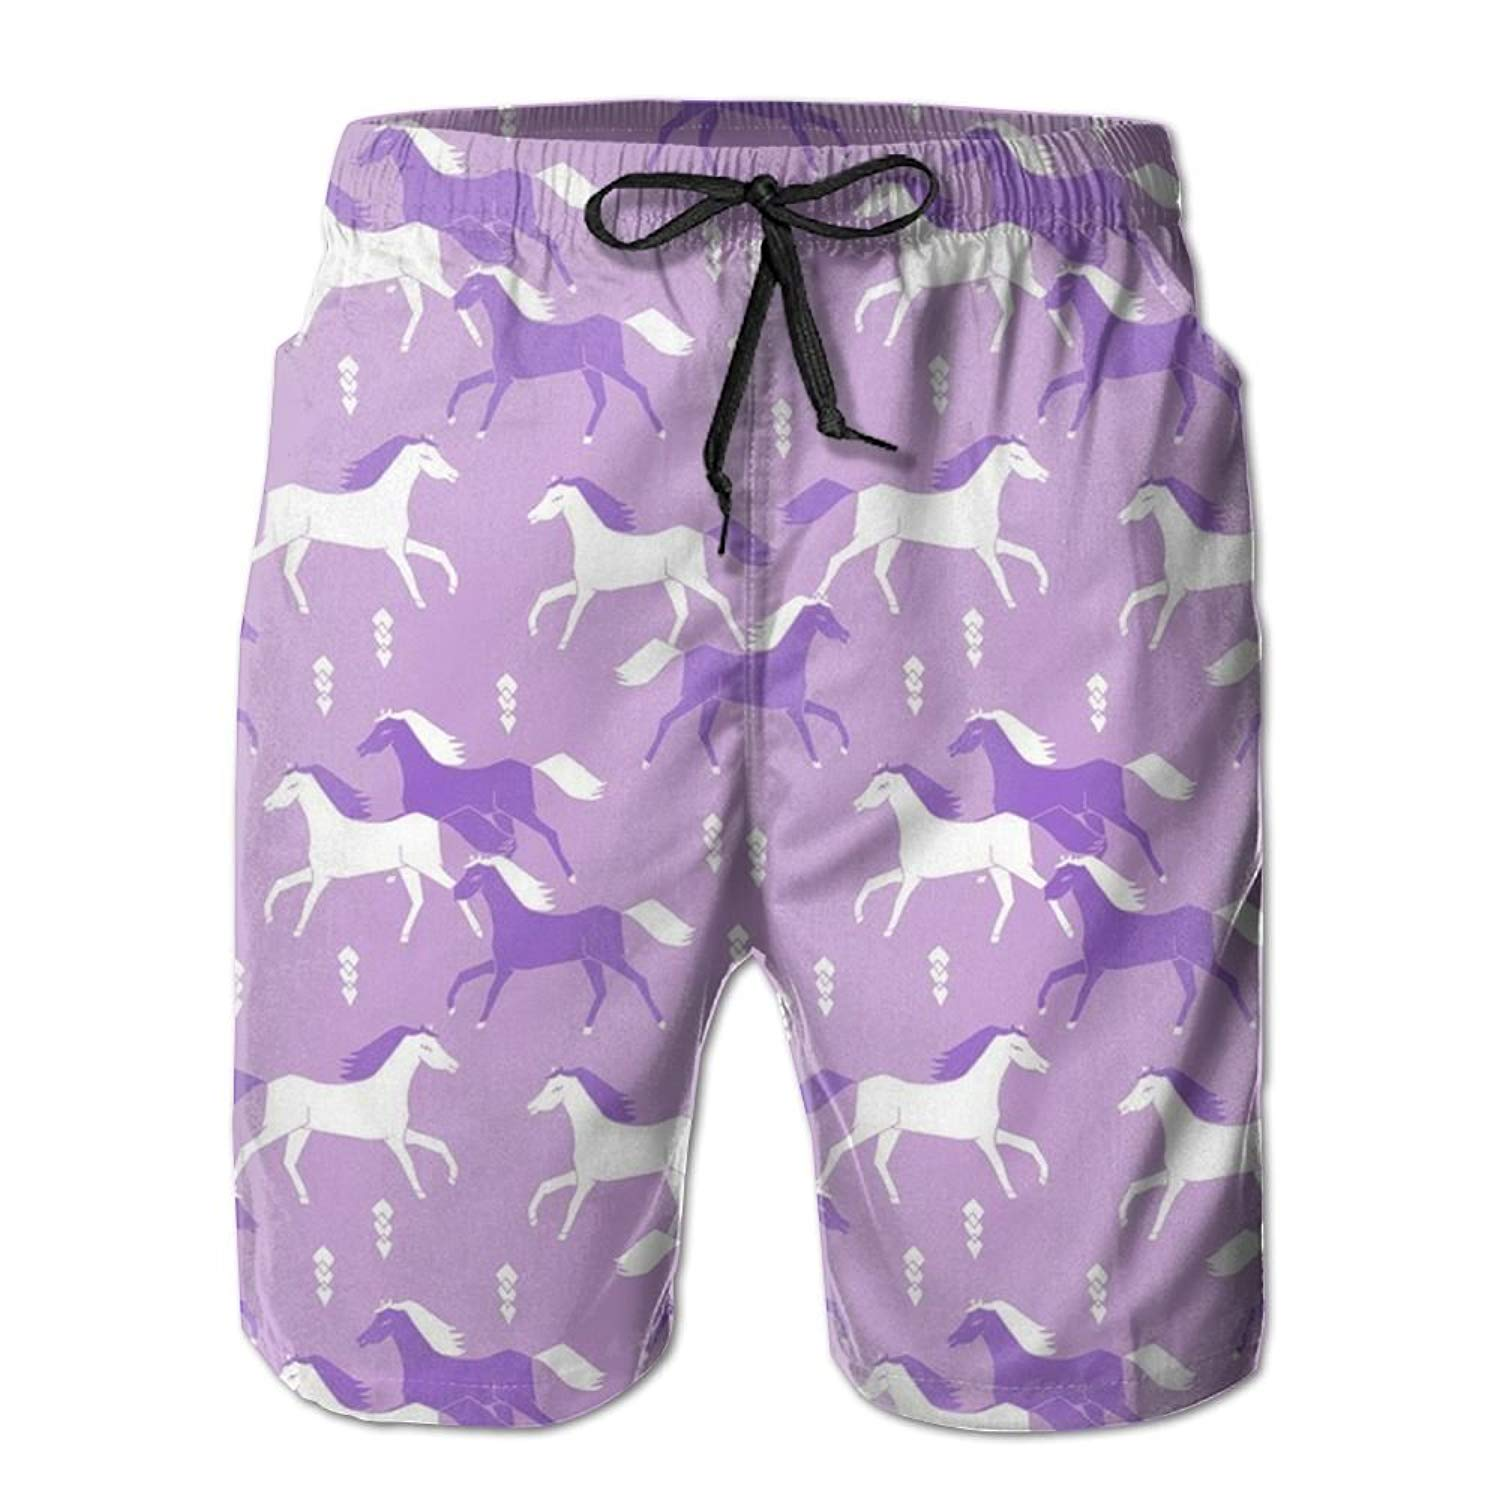 853fa08a47 Get Quotations · Huadduo Horses Purple Men's Swim Boardshorts Quick-Dry  Surf Beach Shorts Casual Sport Trunks.